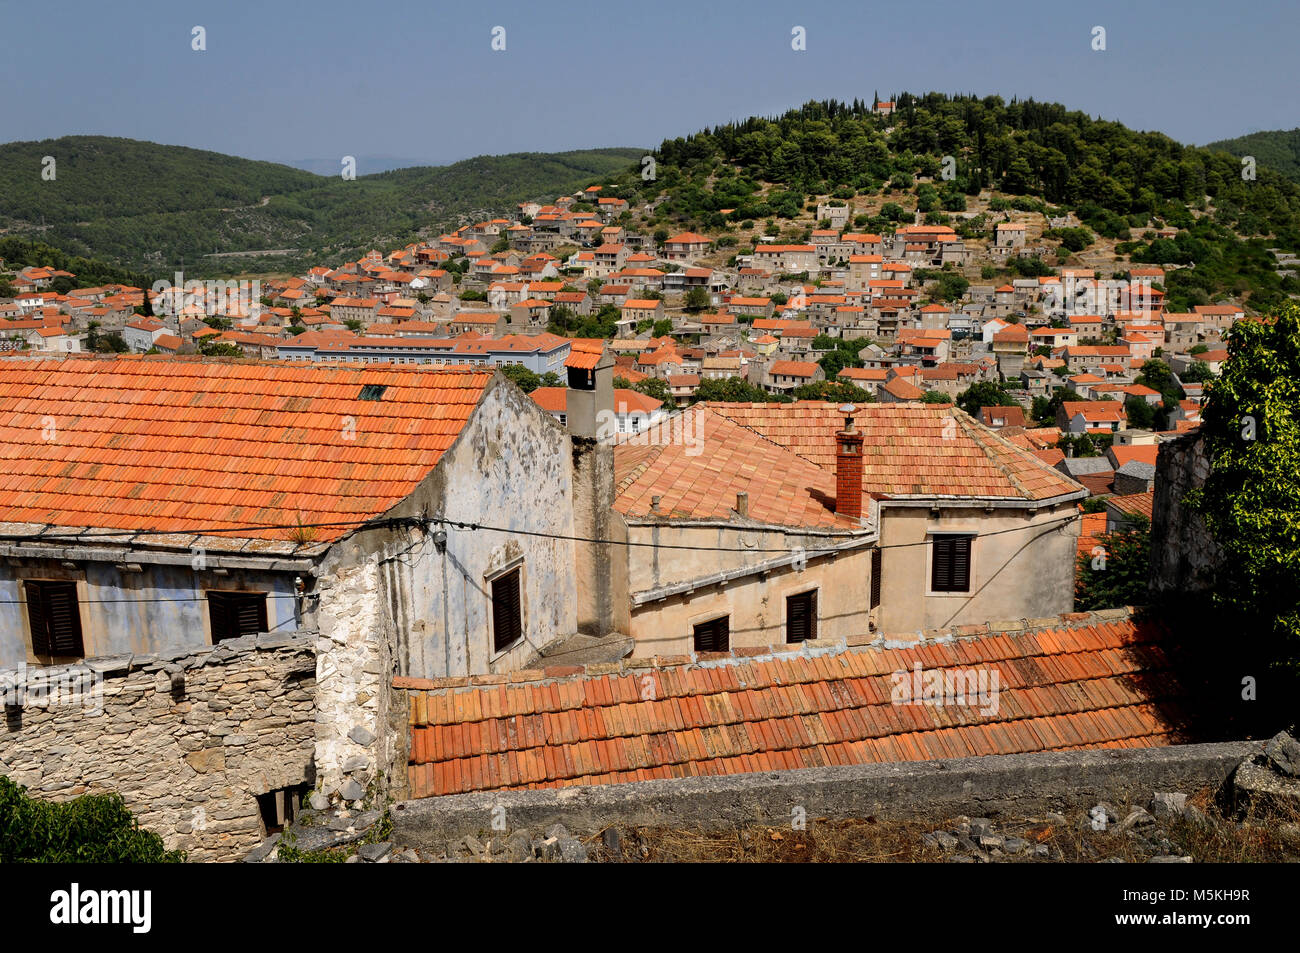 Small Croatian town Blato on island of Korcula, Croatia - Stock Image